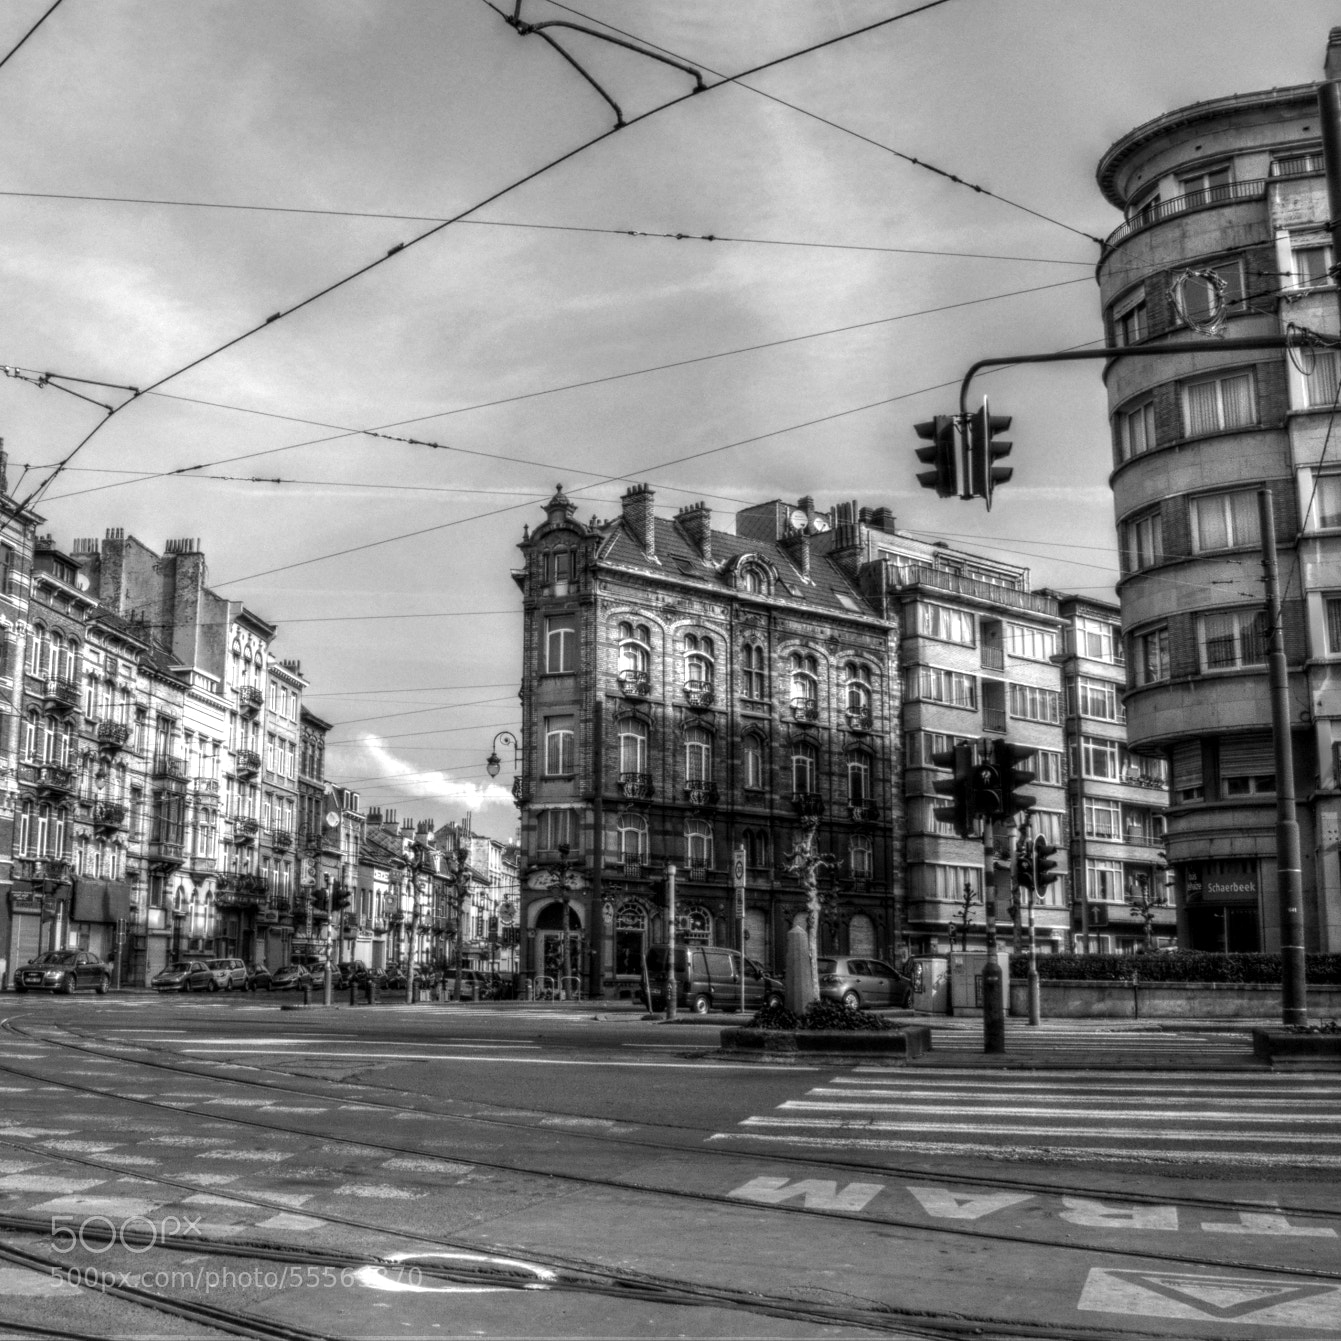 Photograph tramway infrastructure in black and white by Joakim Chappel on 500px